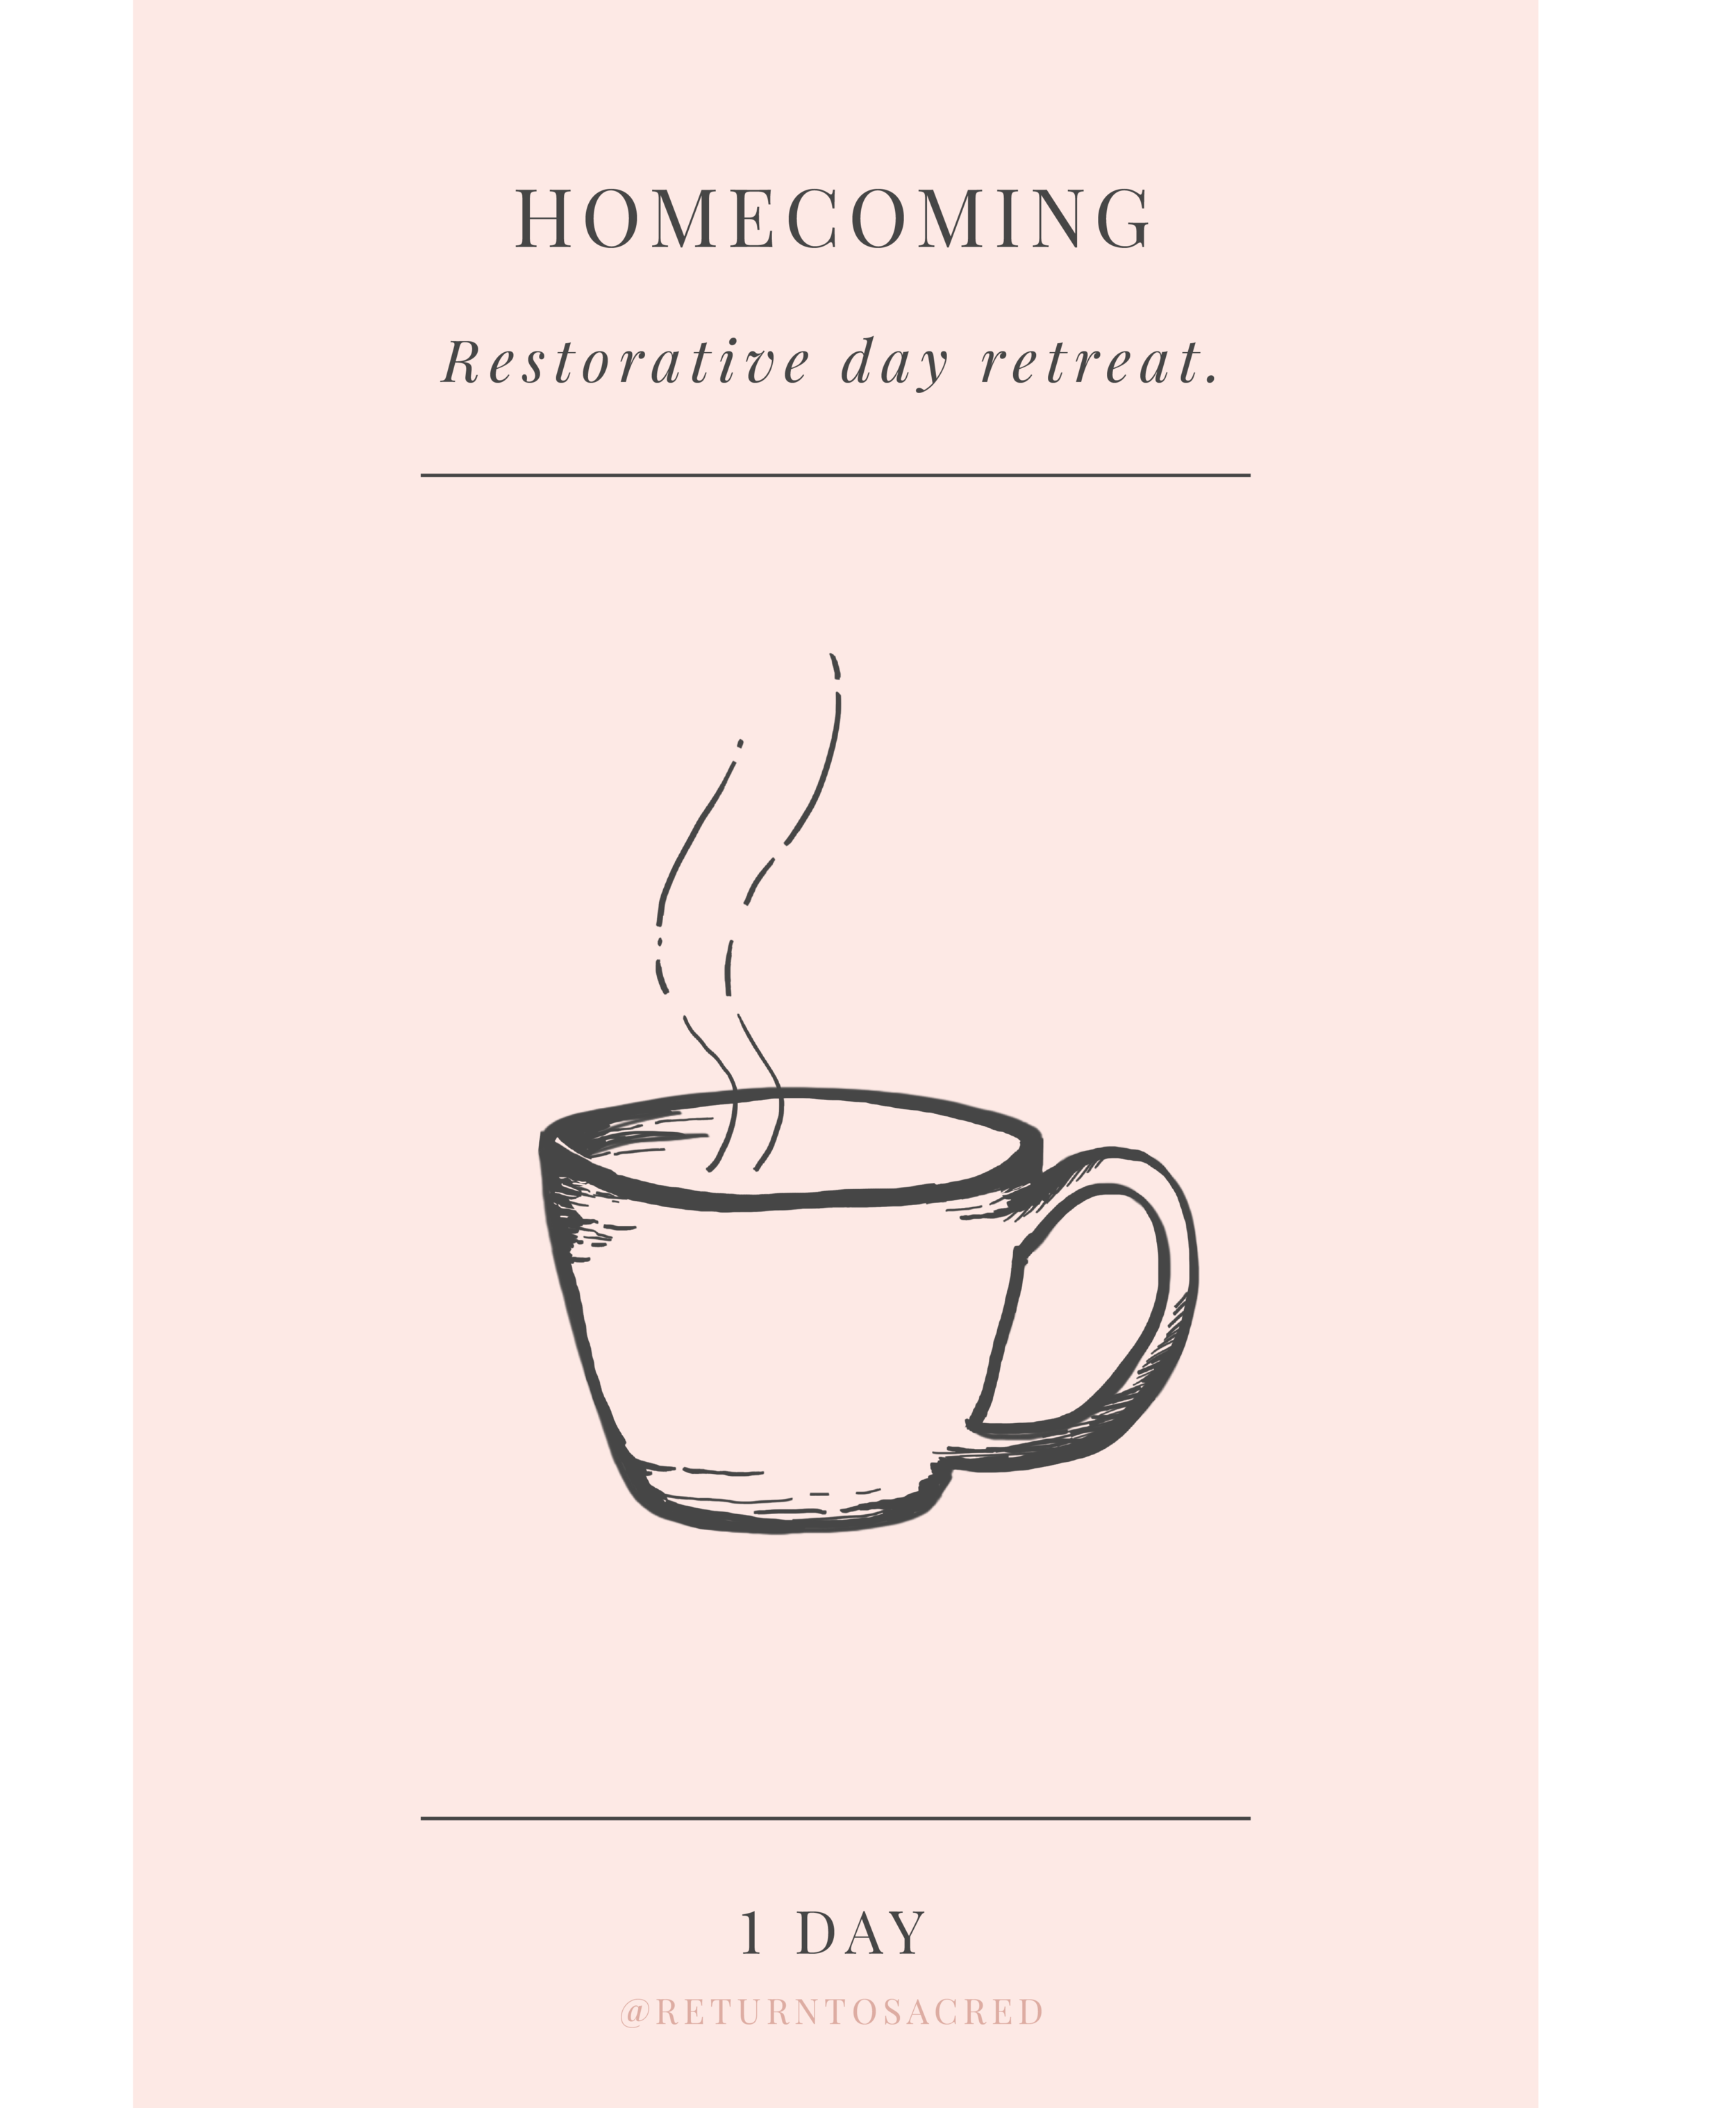 Homecoming-Time-Rectangle.png